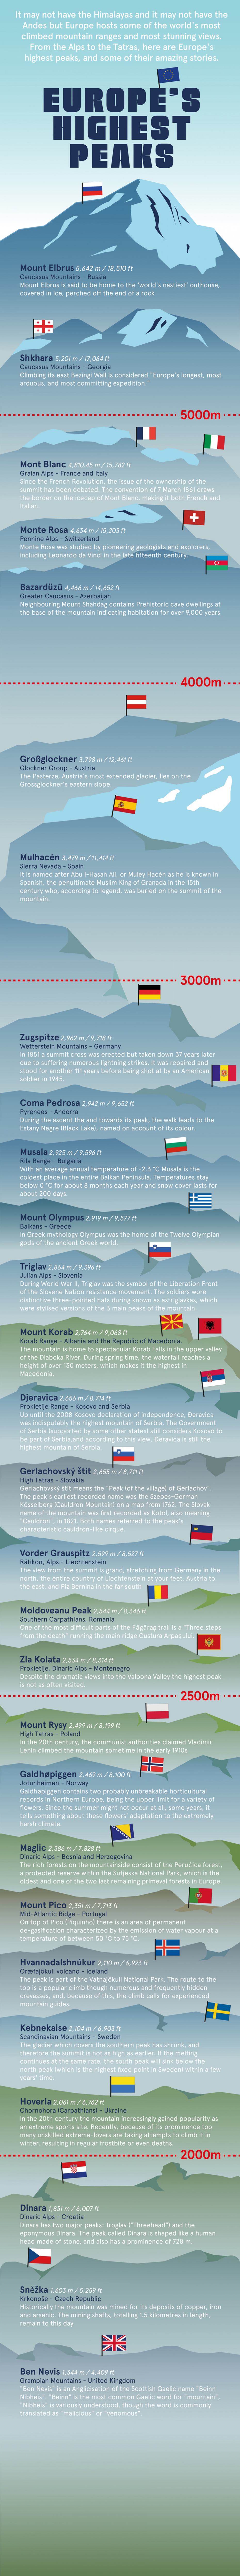 Europe's Highest Peaks Infographic